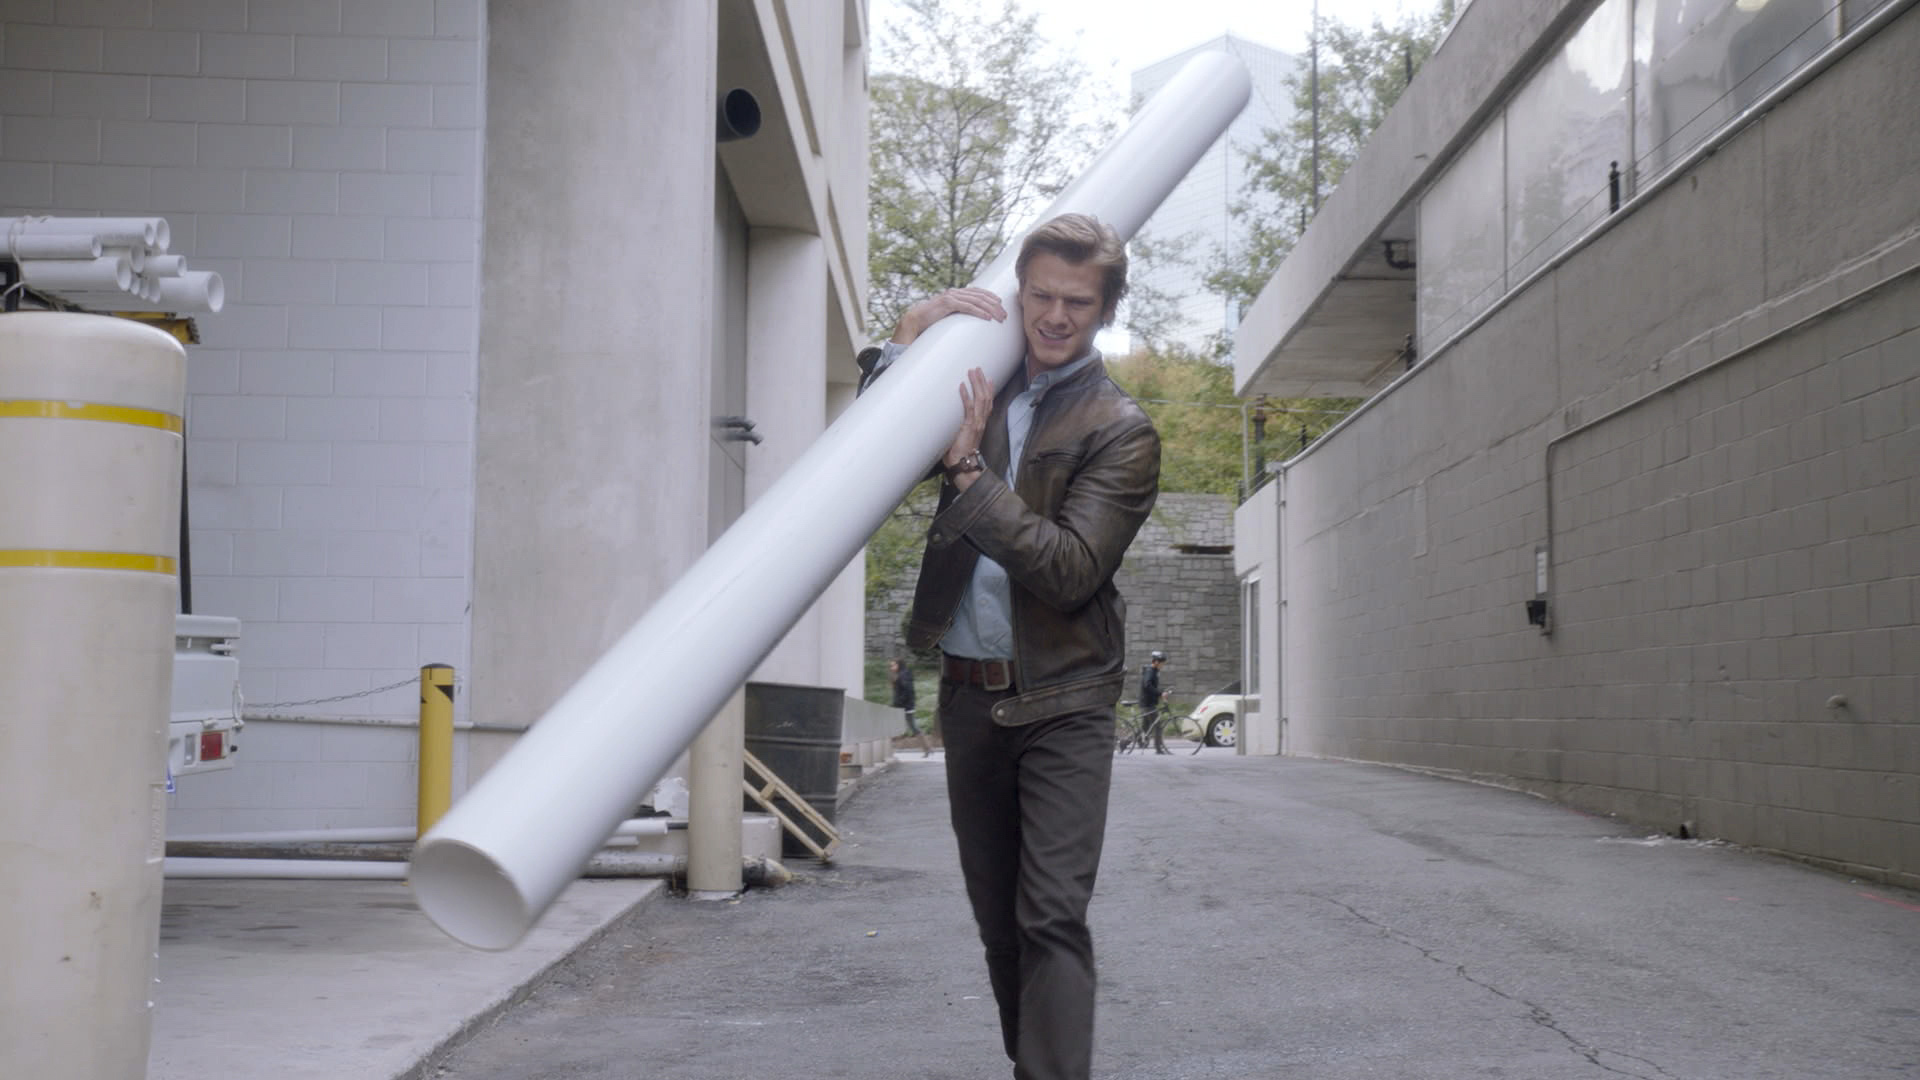 MacGyver makes use of a discarded PVC pipe.